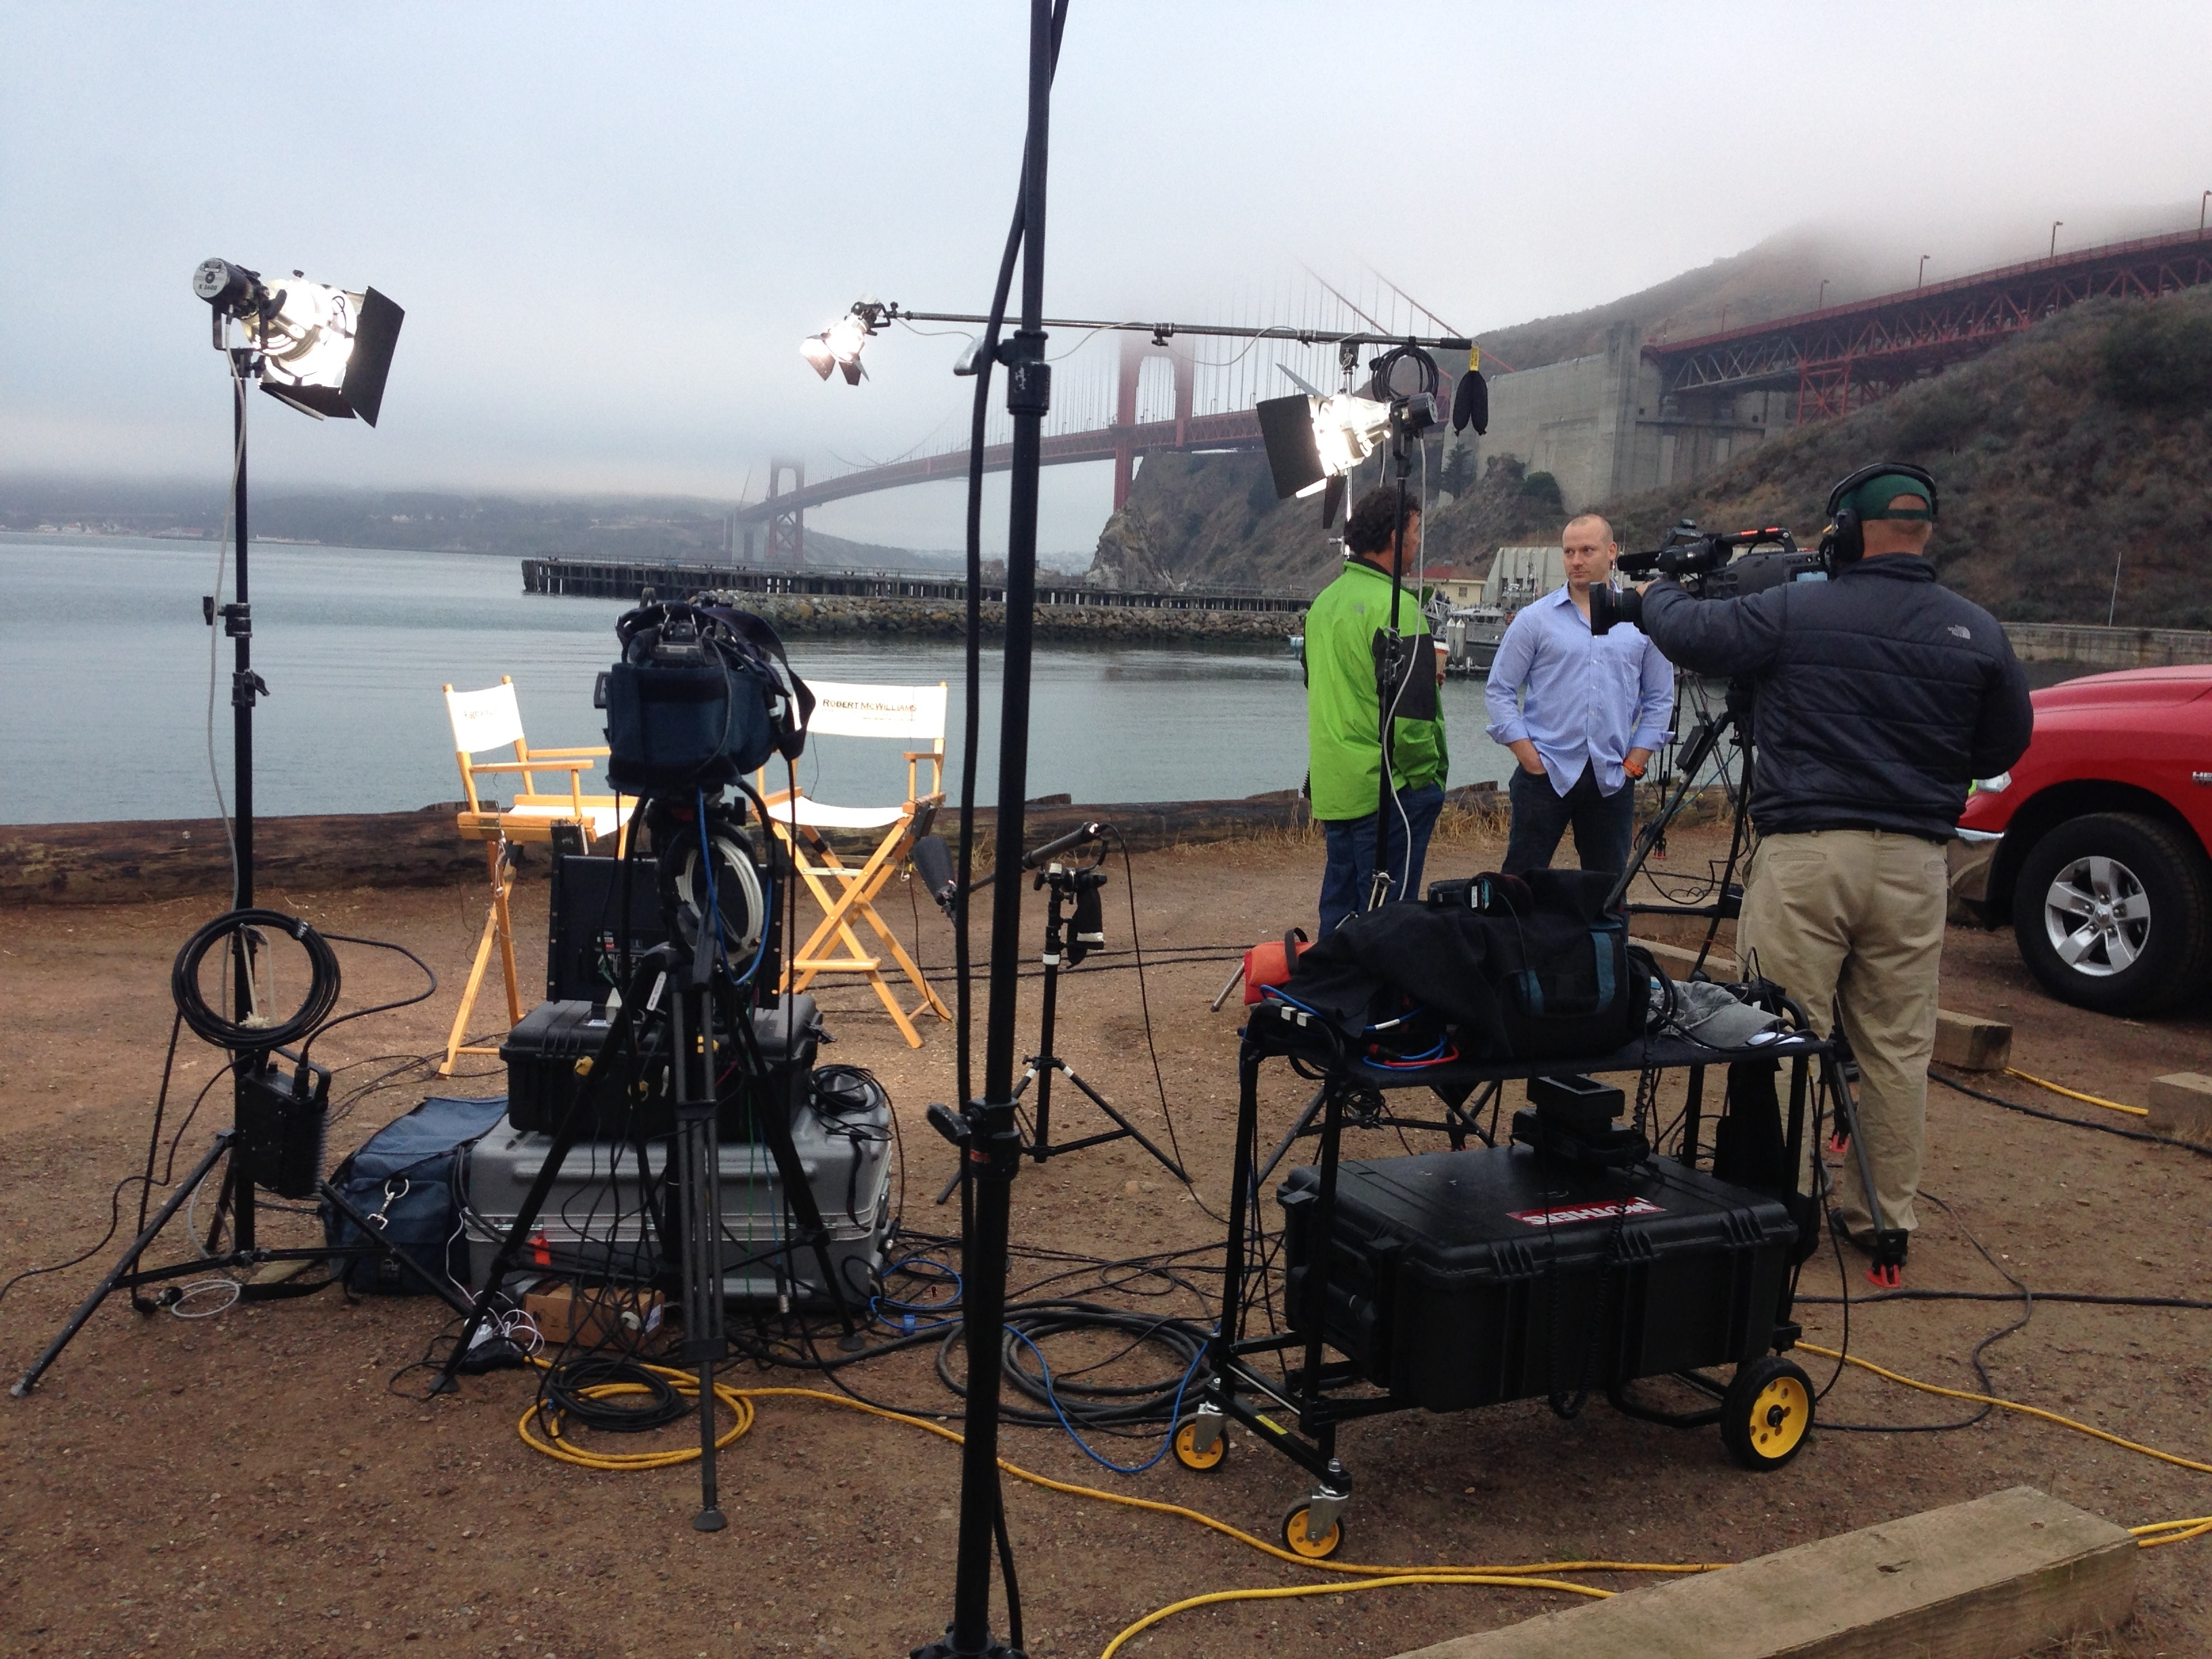 LIVE again from the GG Bridge!